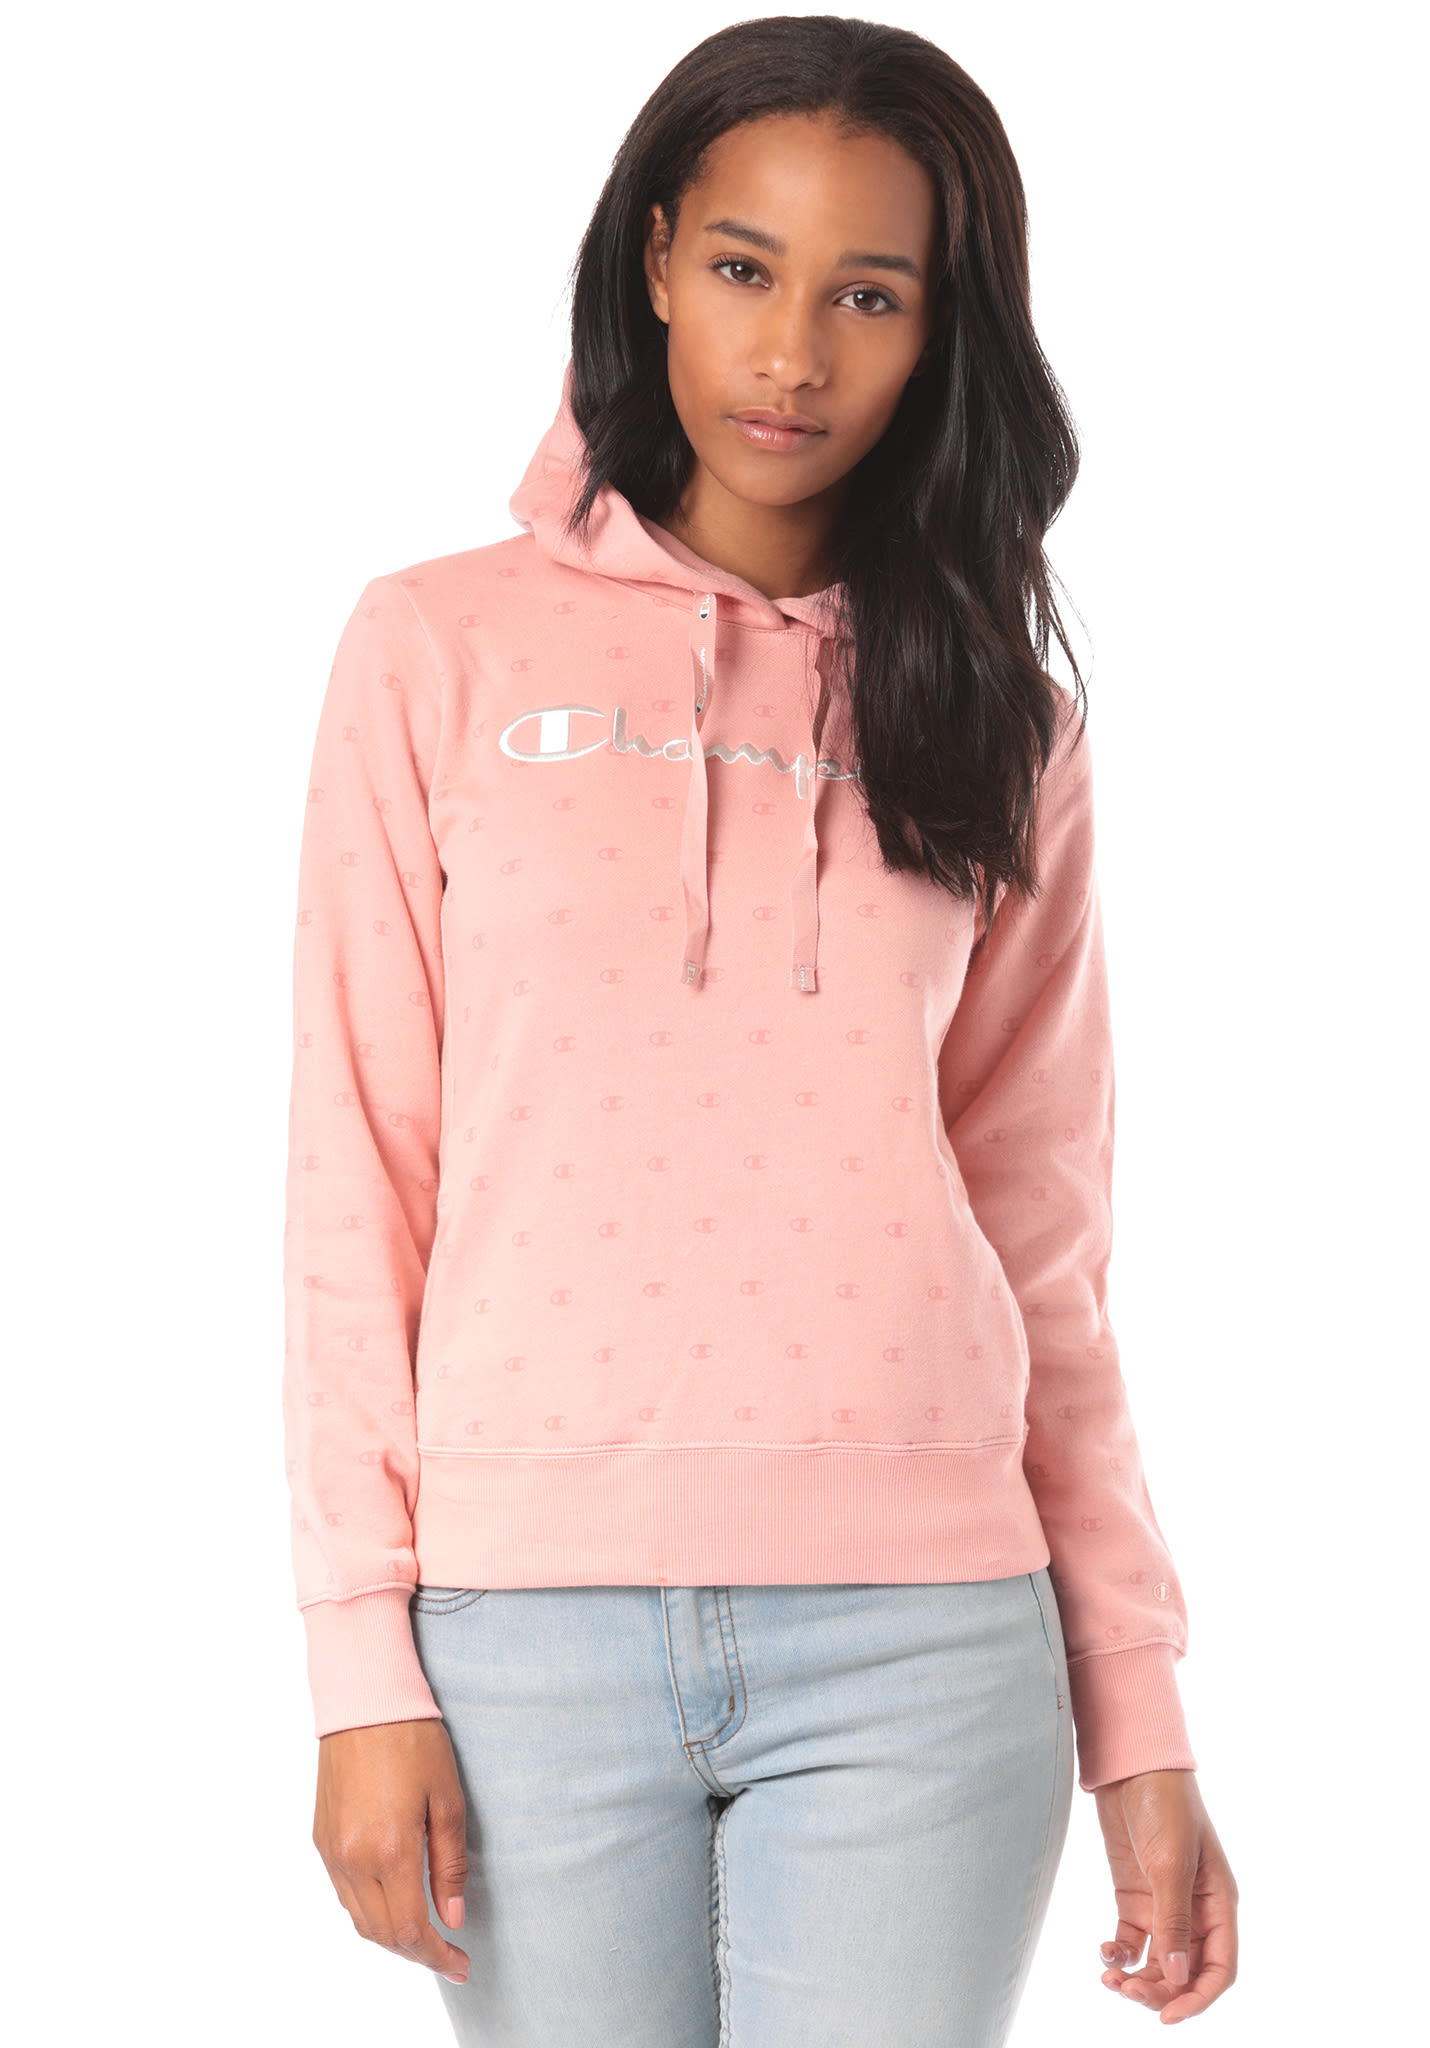 db6d34d289c3 Champion Hooded - Hooded Sweatshirt for Women - Pink - Planet Sports